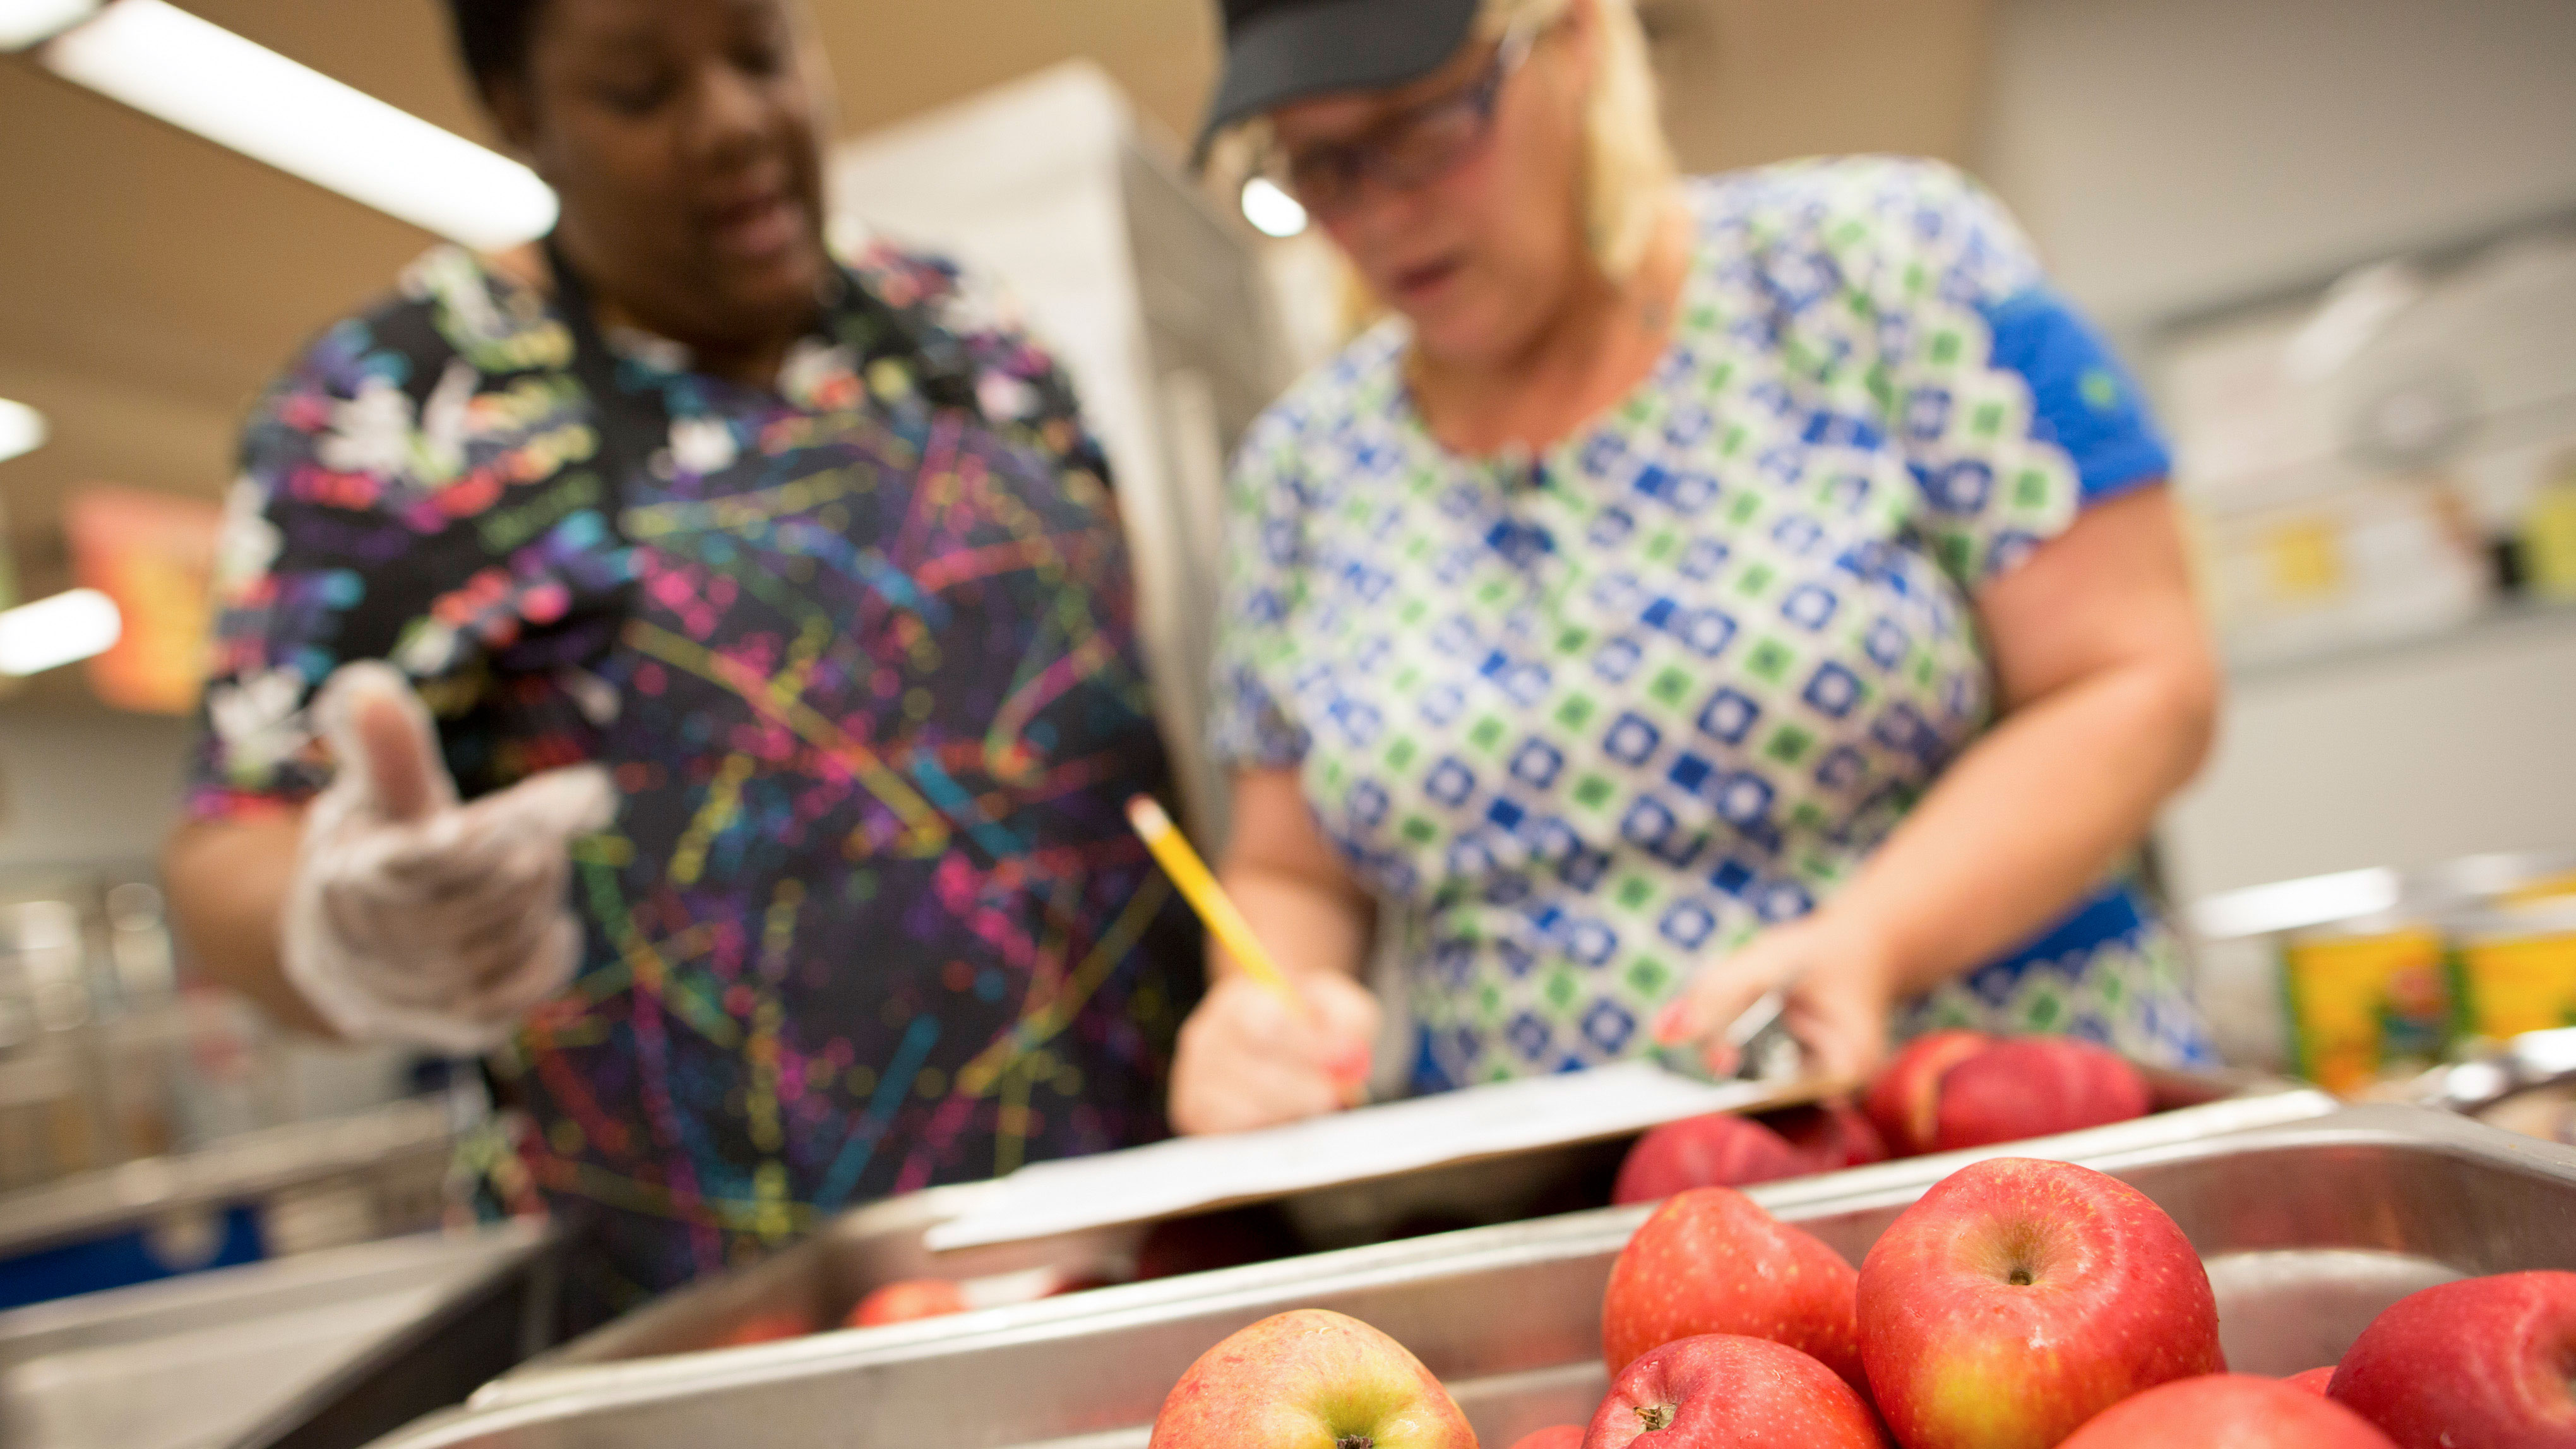 Cafeteria staff prepare school lunches for students.